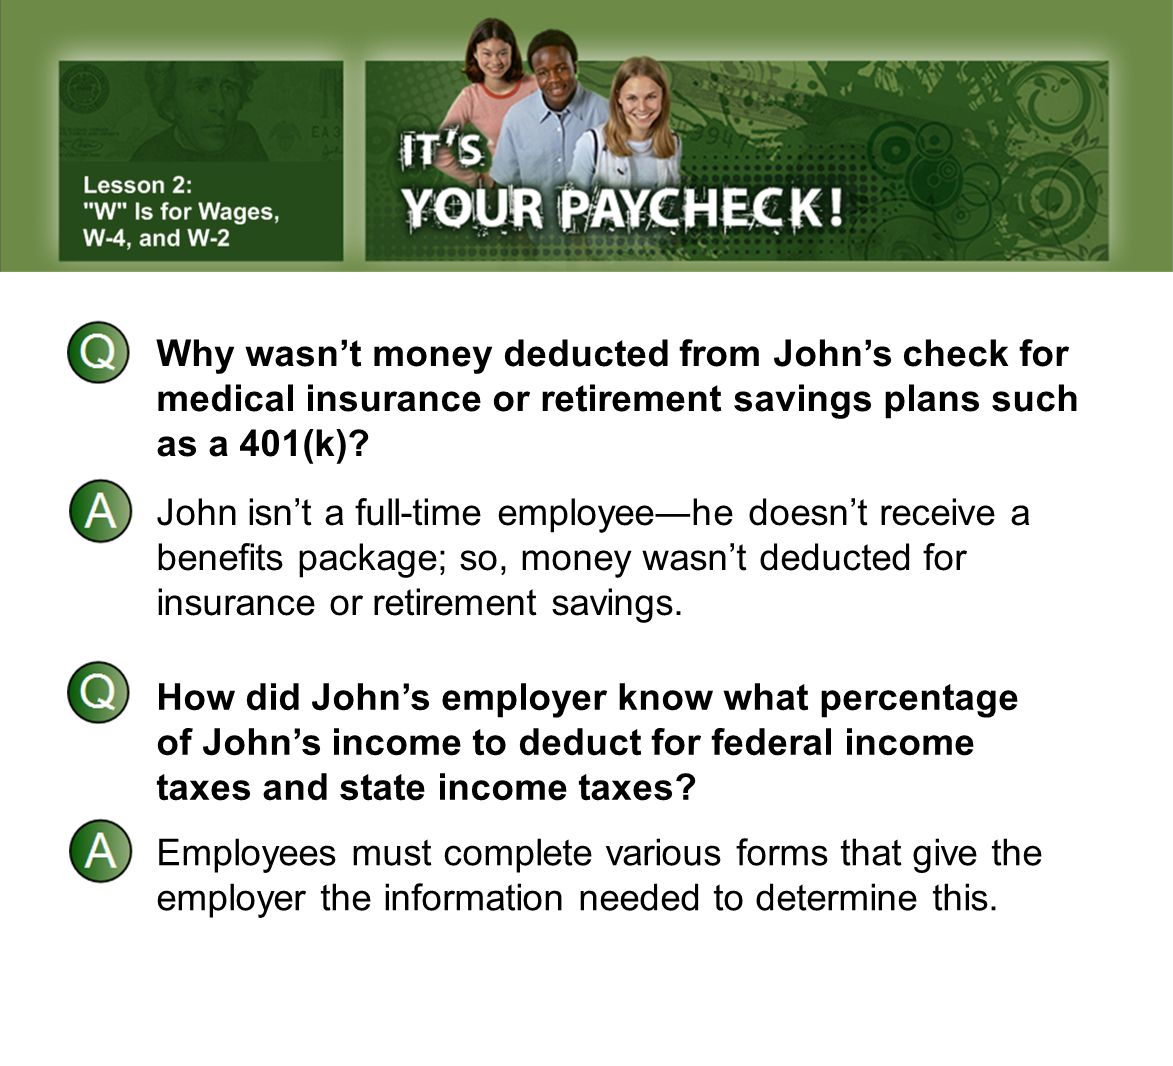 Why wasn't money deducted from John's check for medical insurance or retirement savings plans such